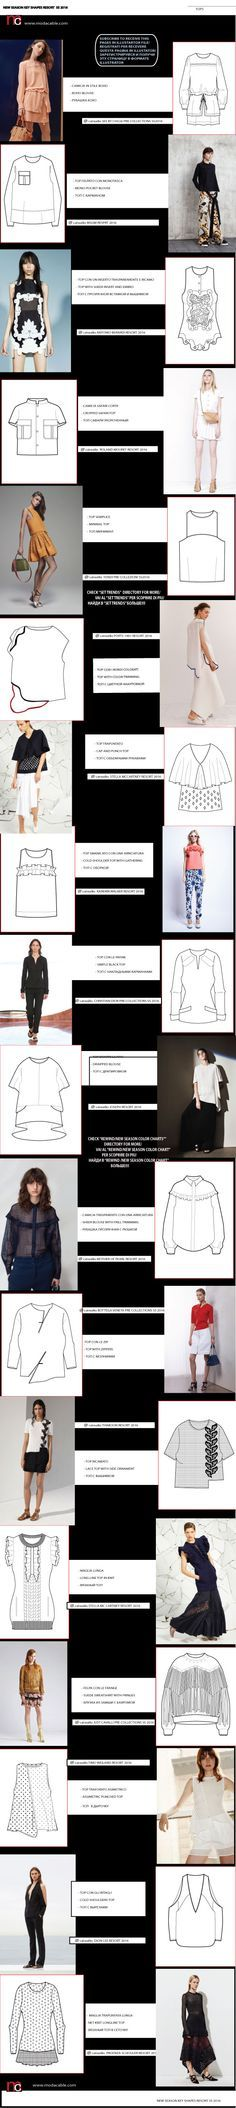 How the clothes look like as designed on paper and when sewn and worn. Flat Drawings, Flat Sketches, Technical Drawings, Fashion Flats, Diy Fashion, Fashion Design, Fashion Sketchbook, Fashion Sketches, Fashion Templates